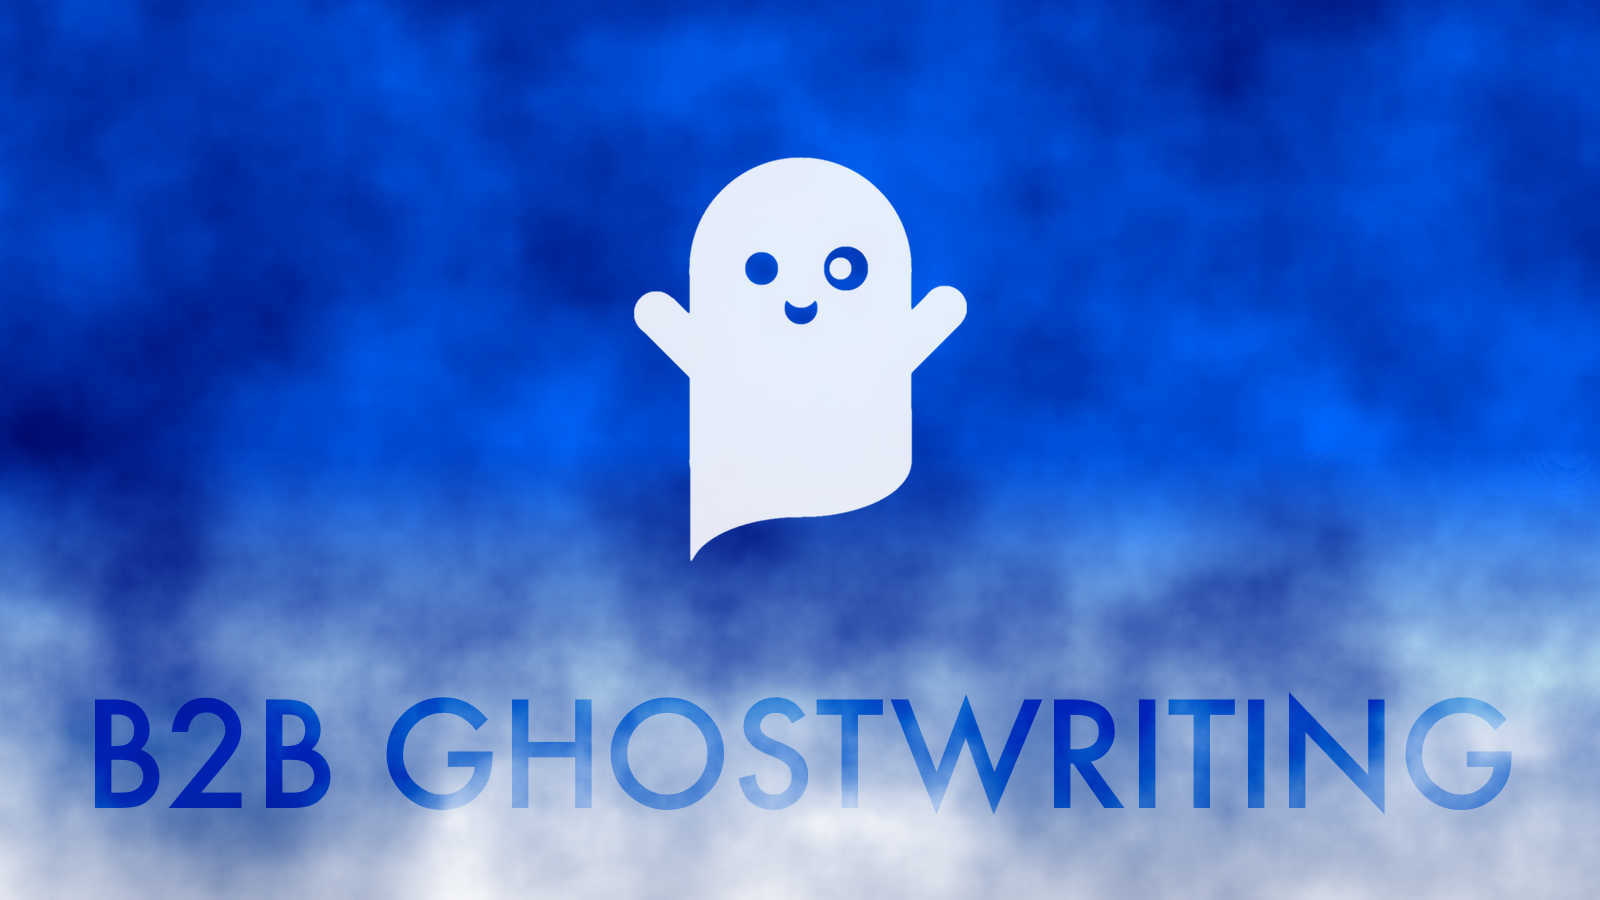 B2B Ghostwriting